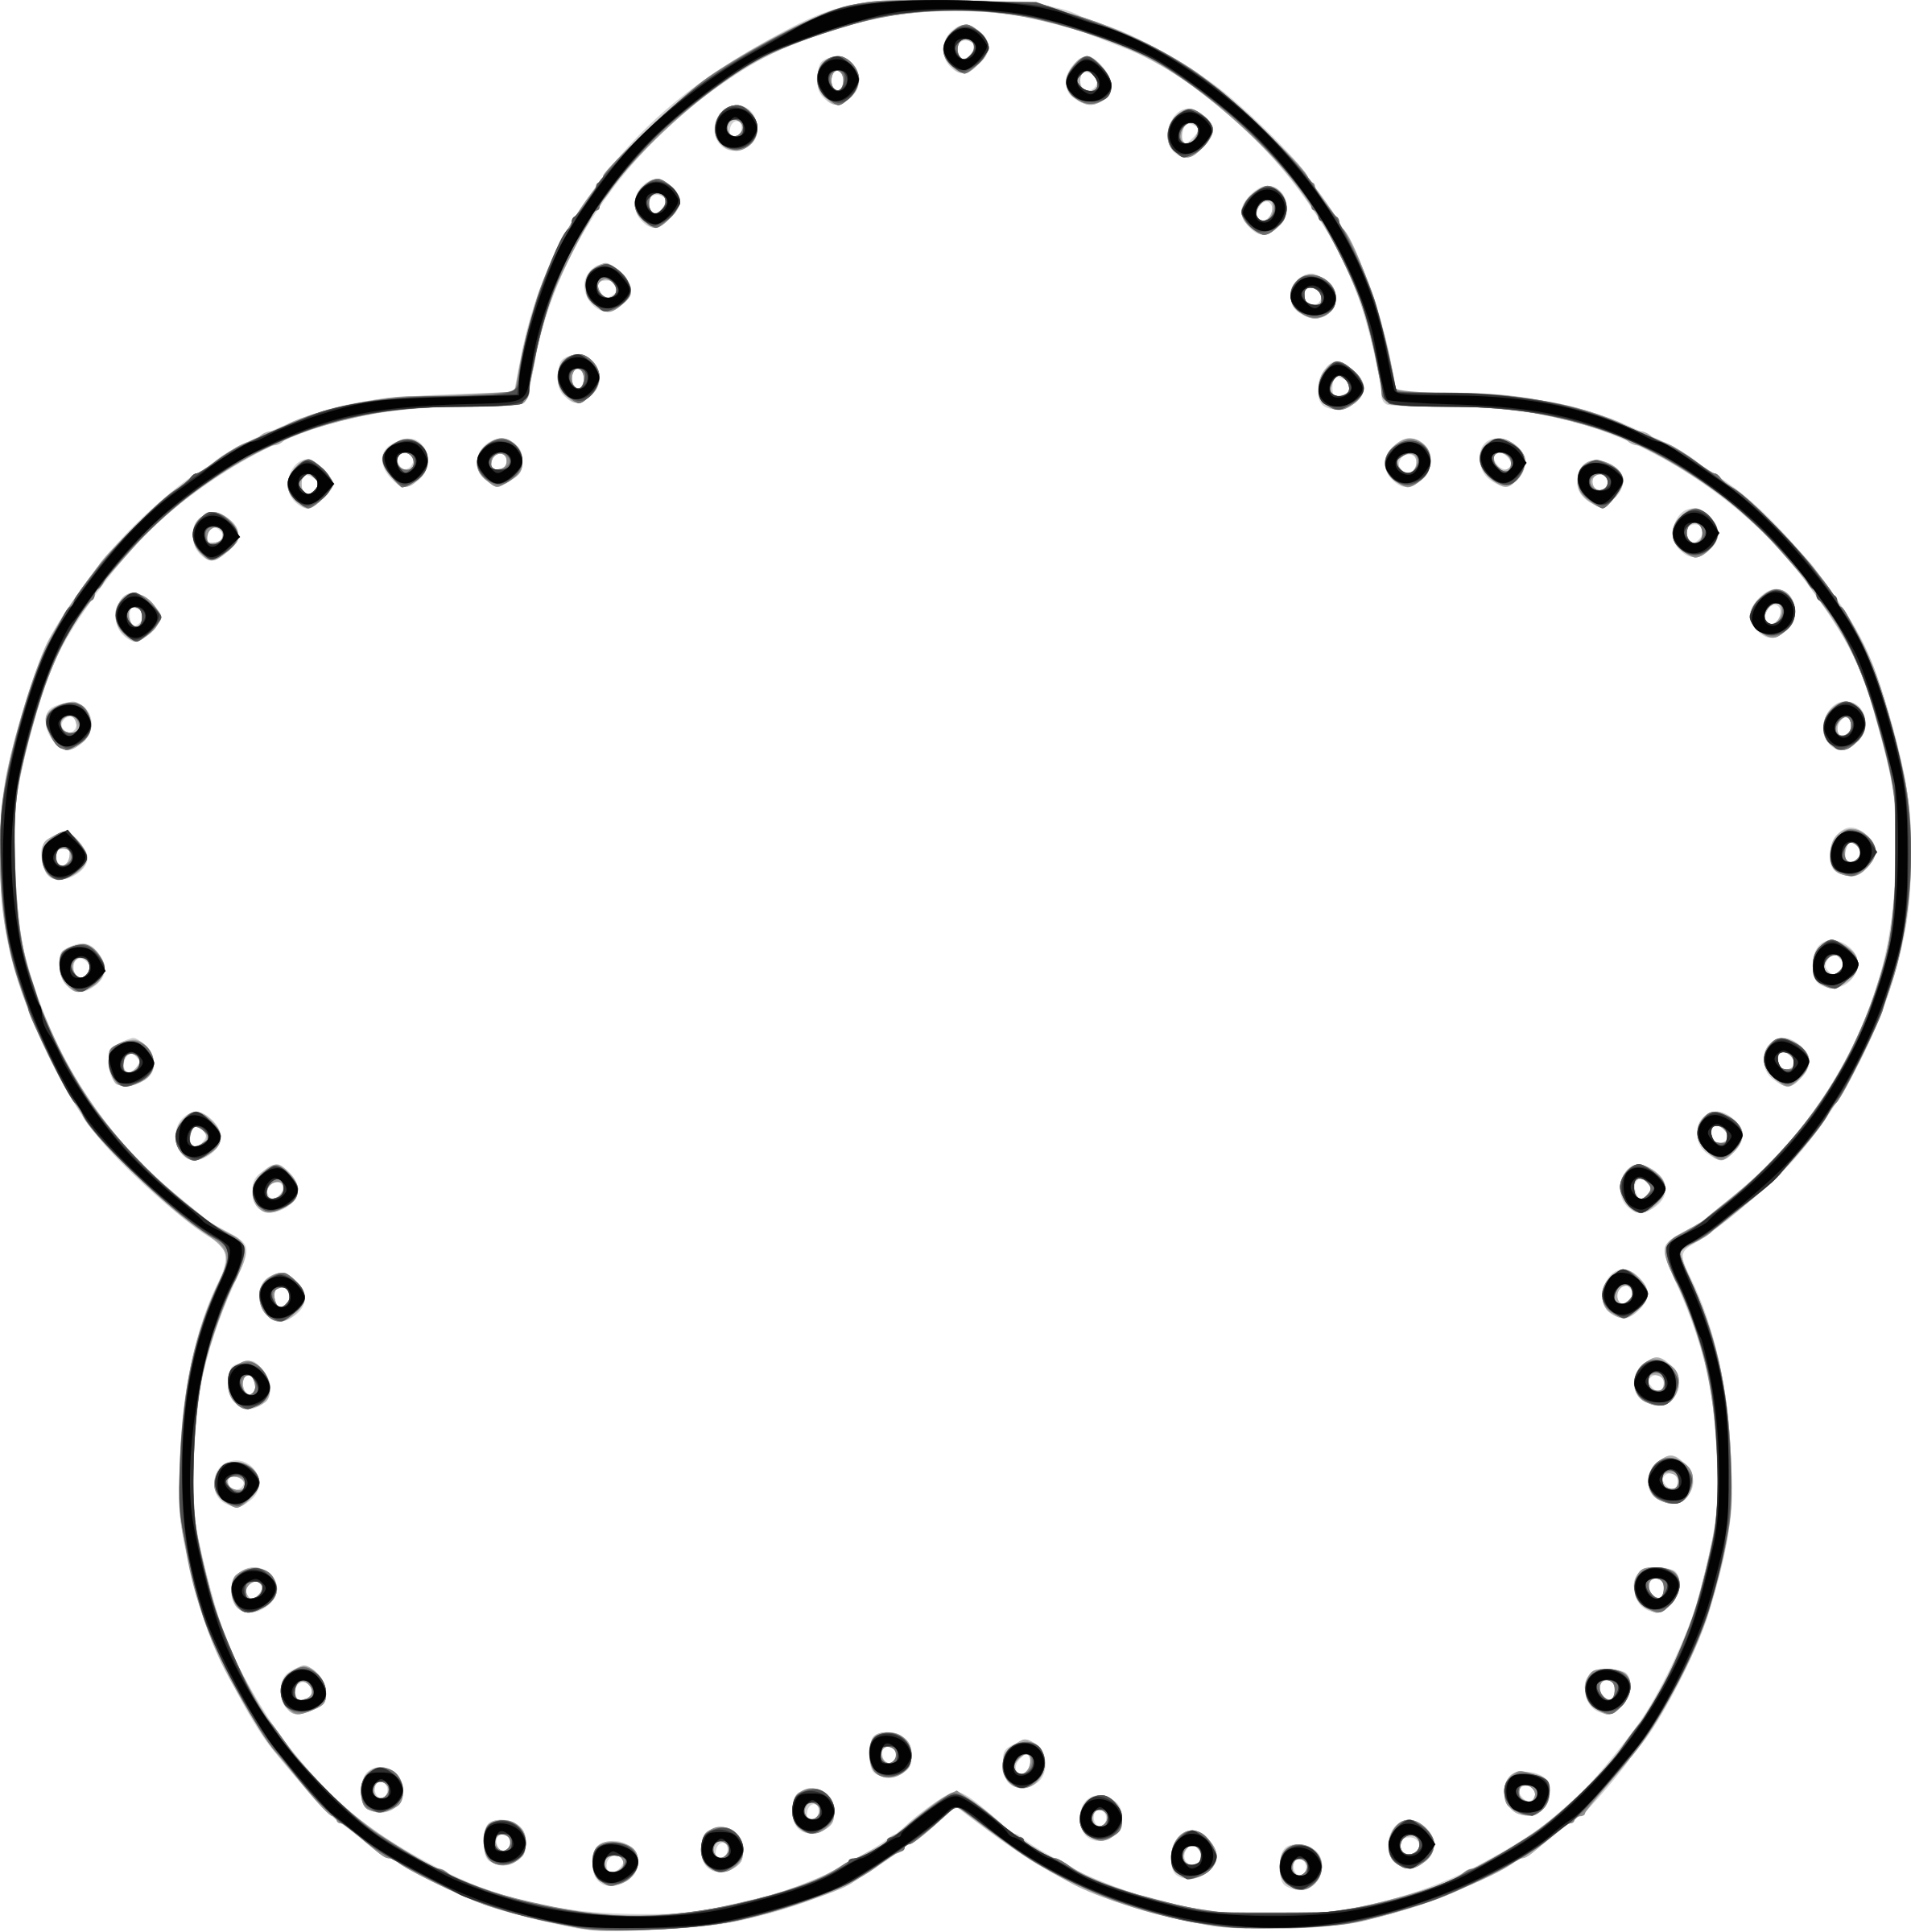 Snowflake circle frame clipart clip transparent 28+ Collection of Circle Border Clipart Black And White   High ... clip transparent